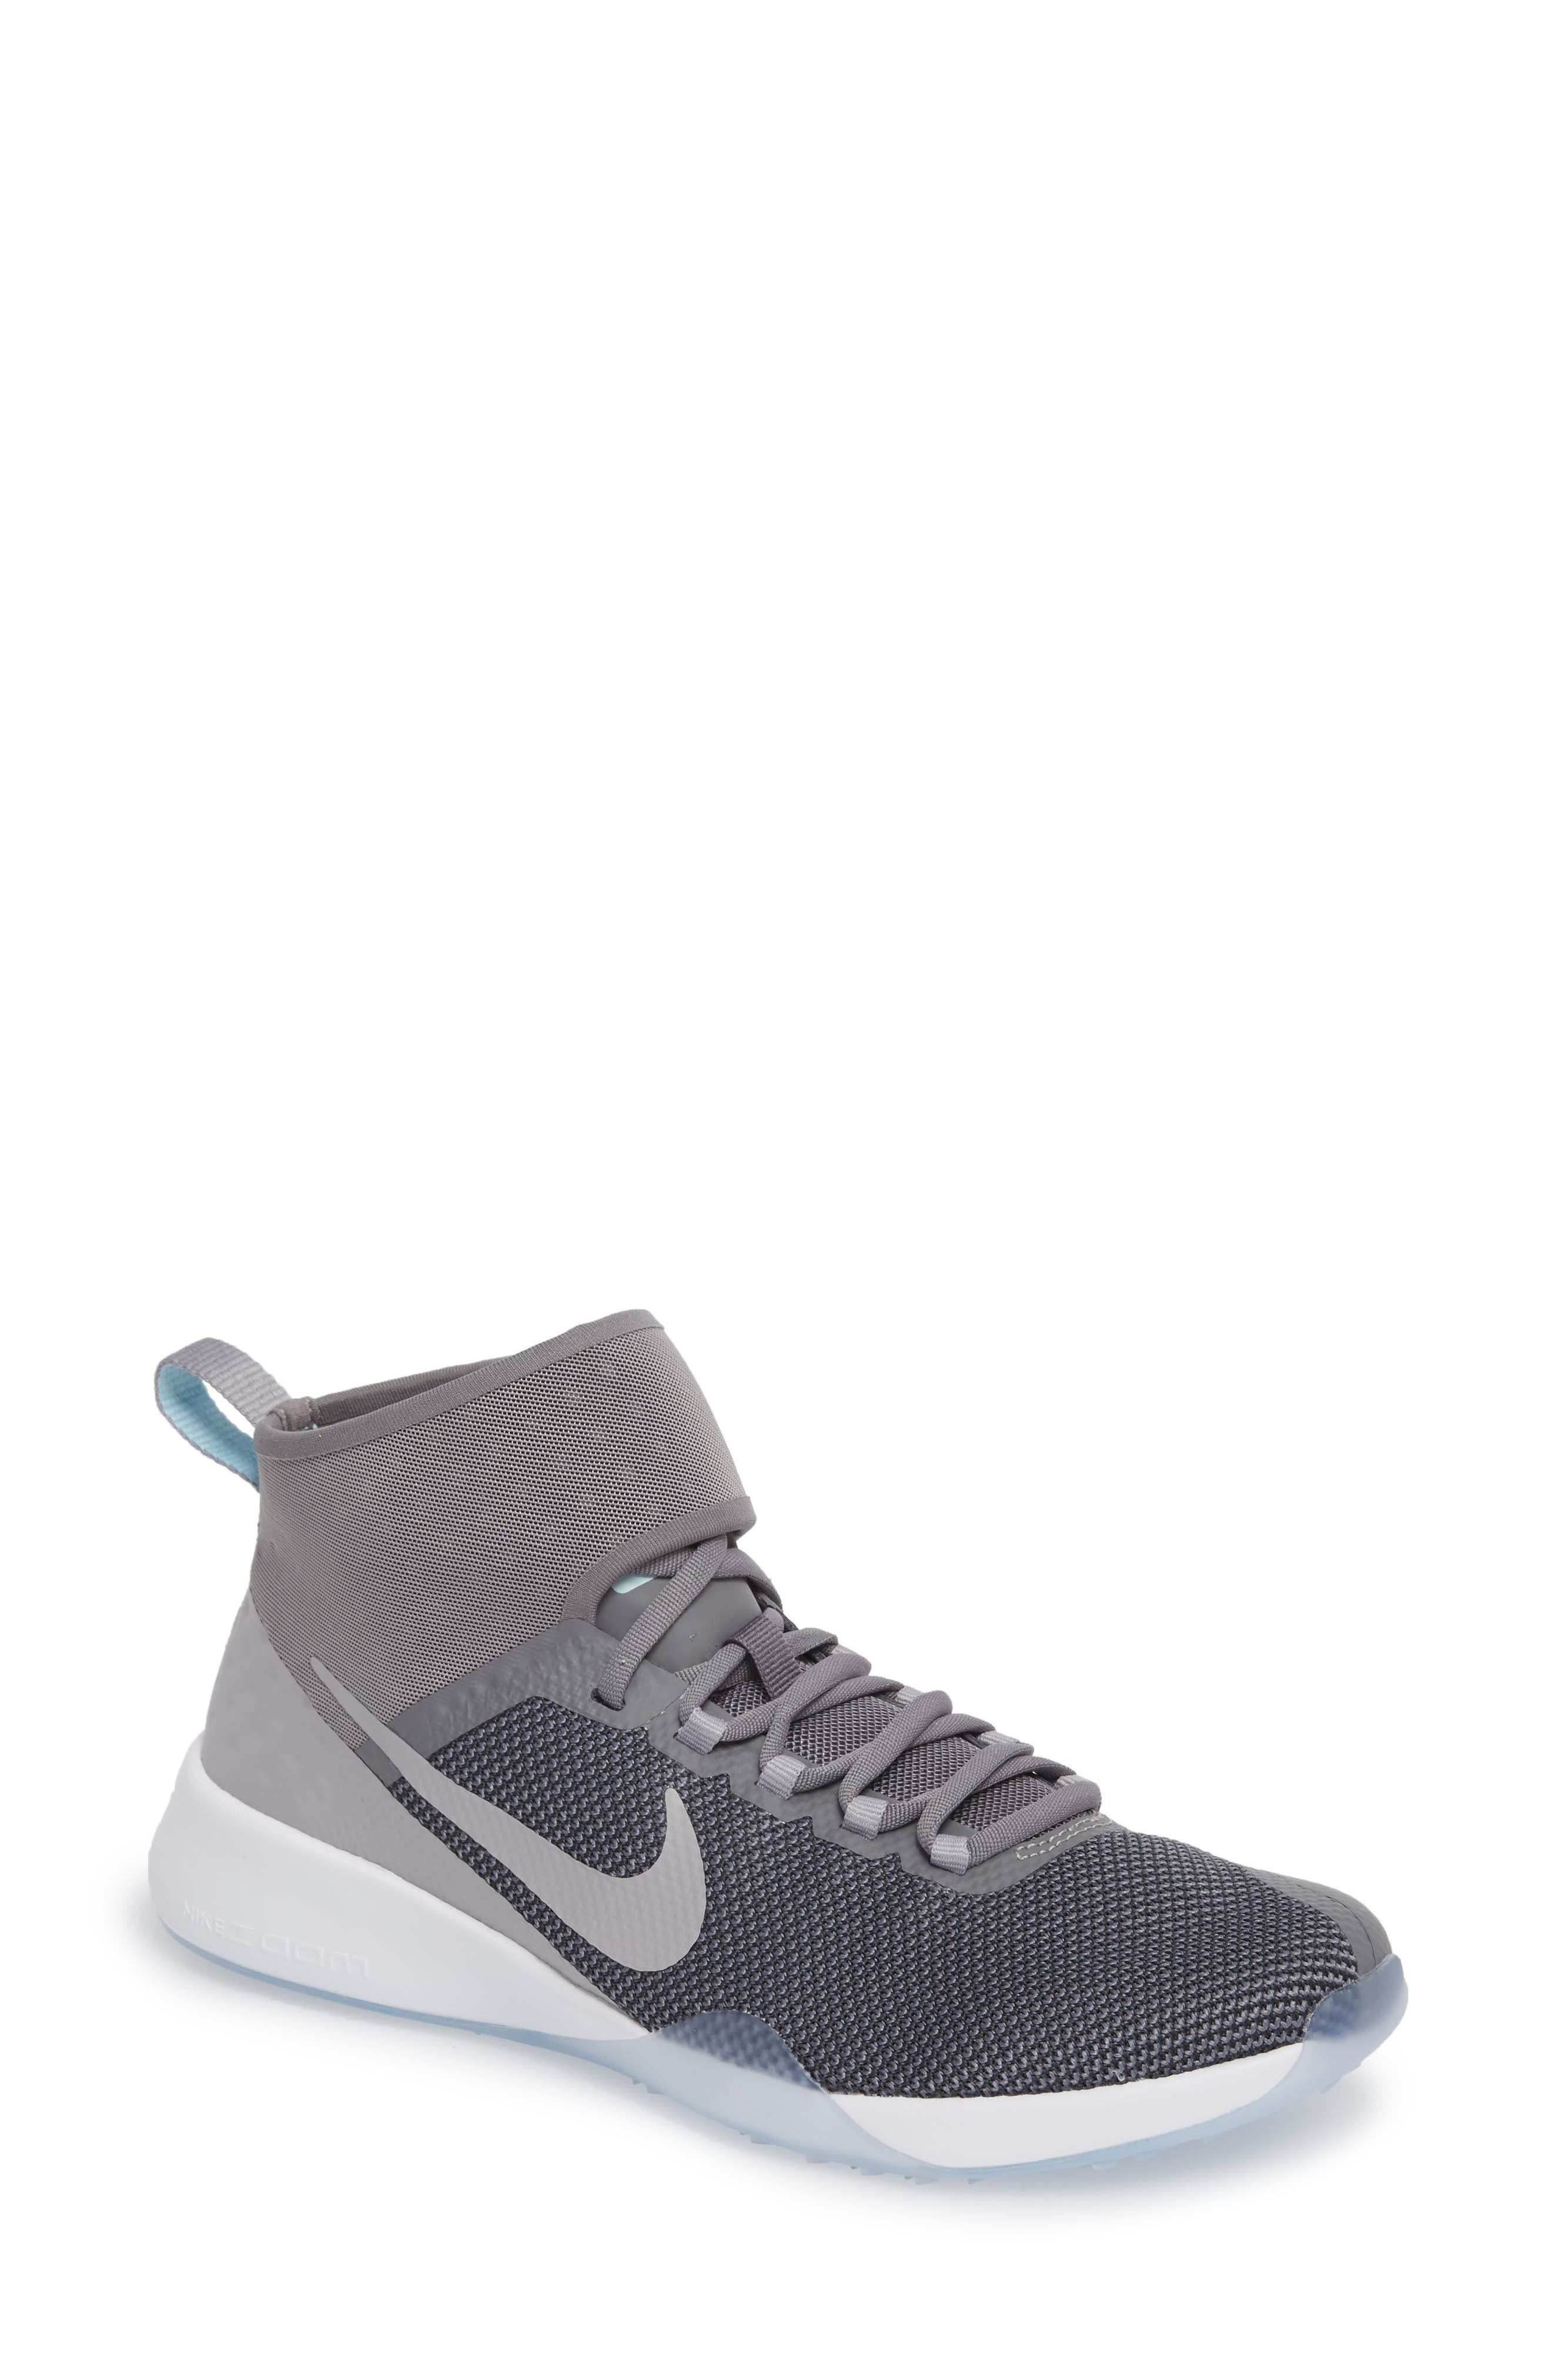 NikeLab Air Zoom Strong 2 Training Shoe,                             Main thumbnail 1, color,                             Smoke/ Atmosphere Grey